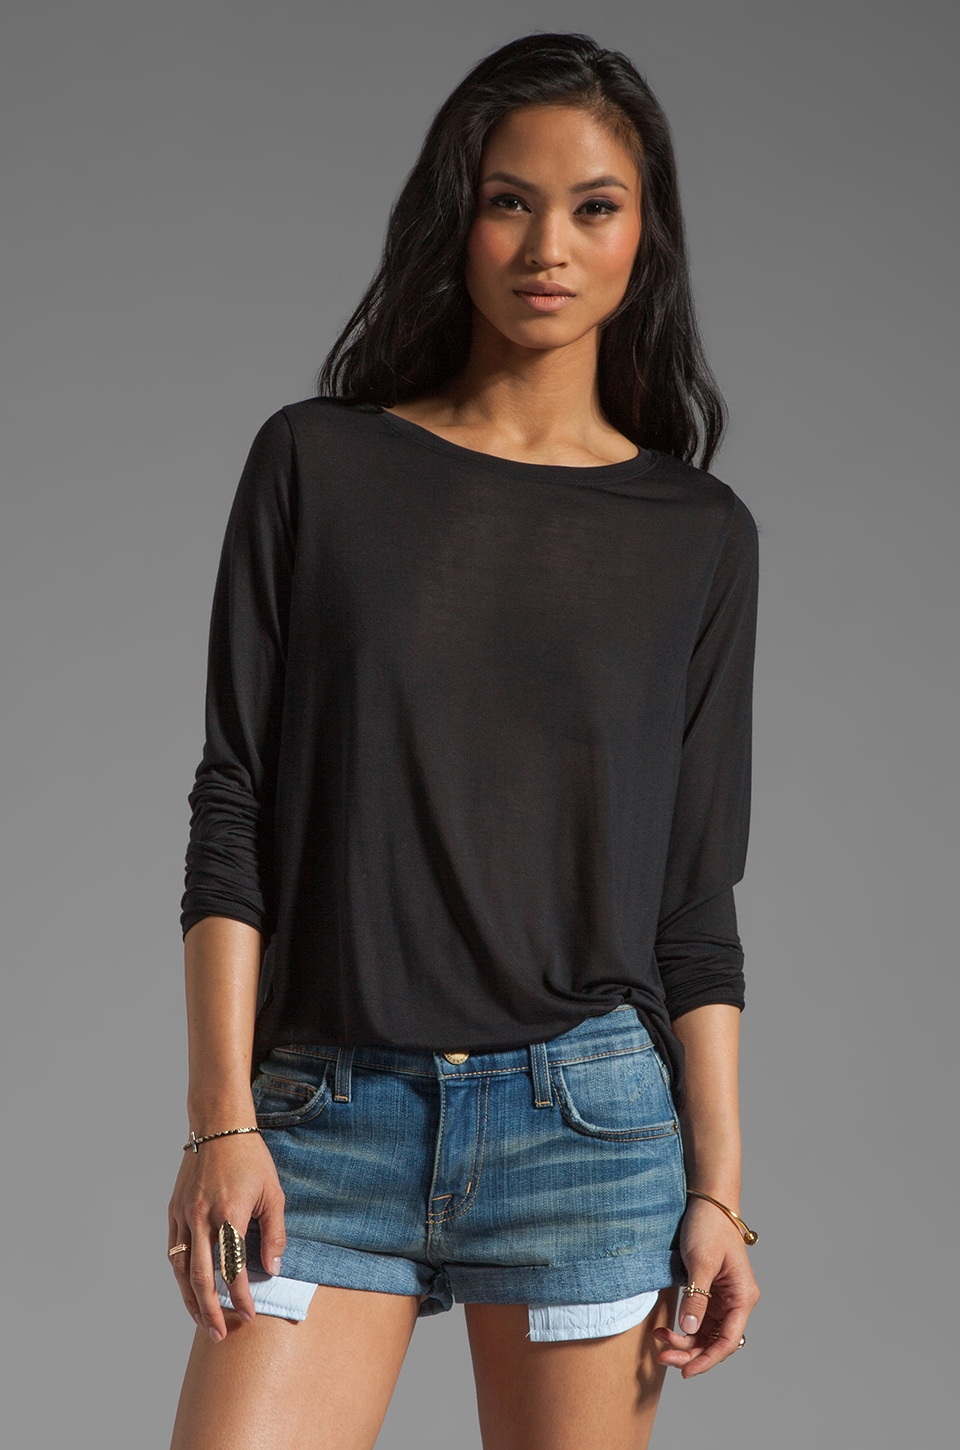 Vince Mixed Media Tees Silk L/S in Black